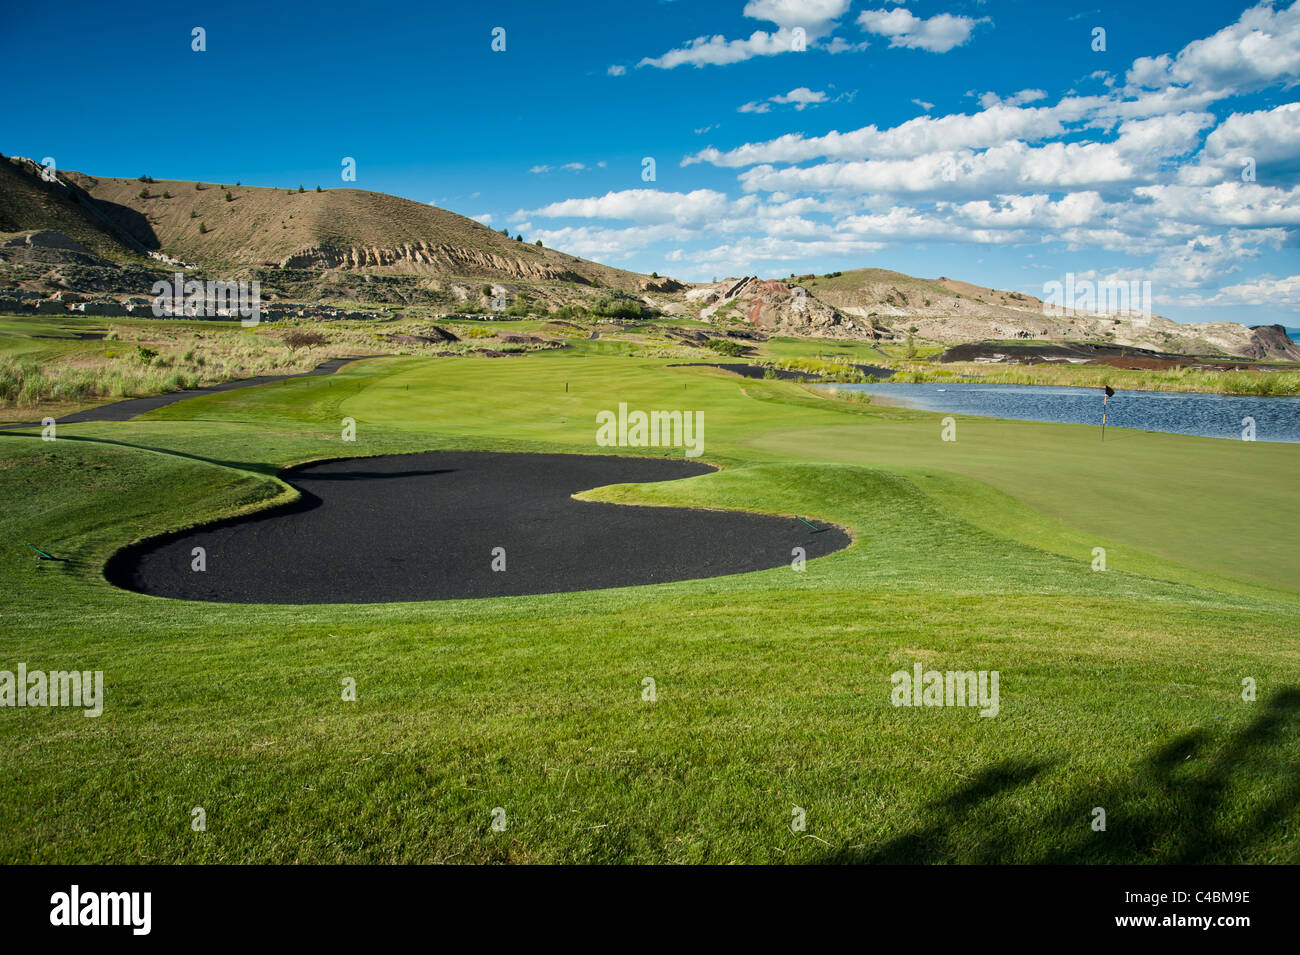 The 'Old Works Golf Course' in Anaconda, Montana. The Golf course was built over a superfund cleanup site. - Stock Image